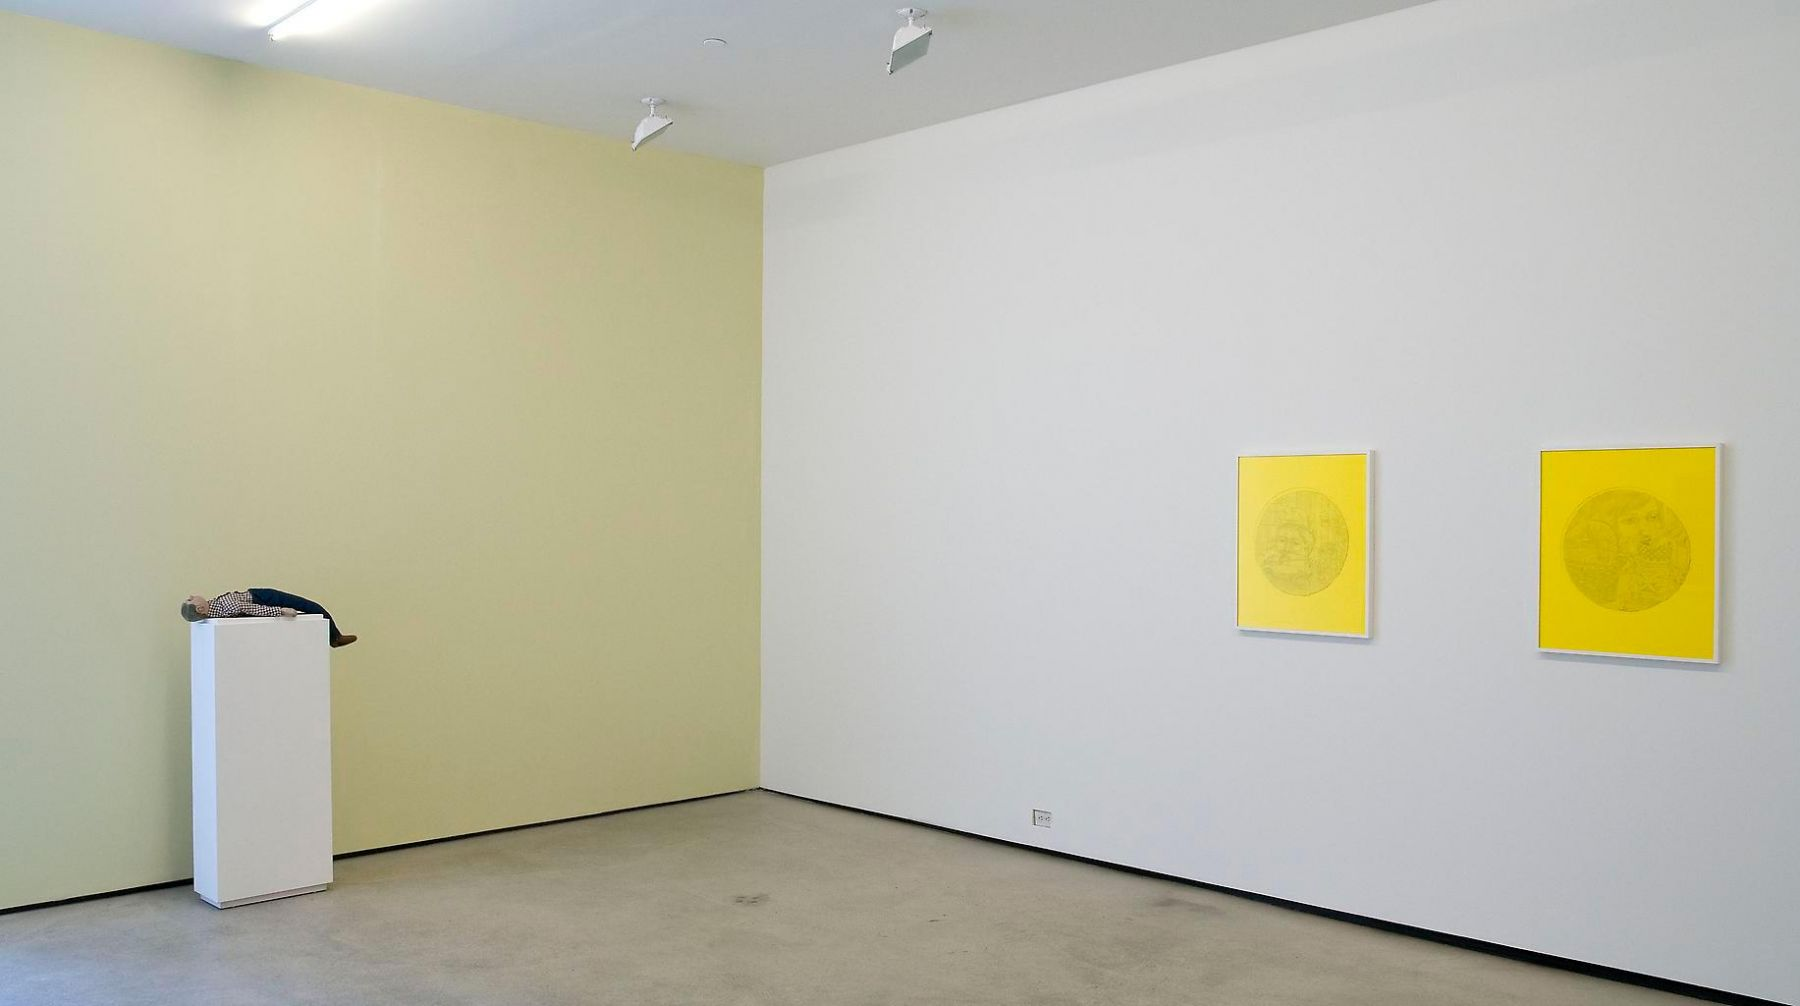 Installation view, Michael Cline, Arcadia, Marc Jancou, New York, March 18 - April 23, 2011